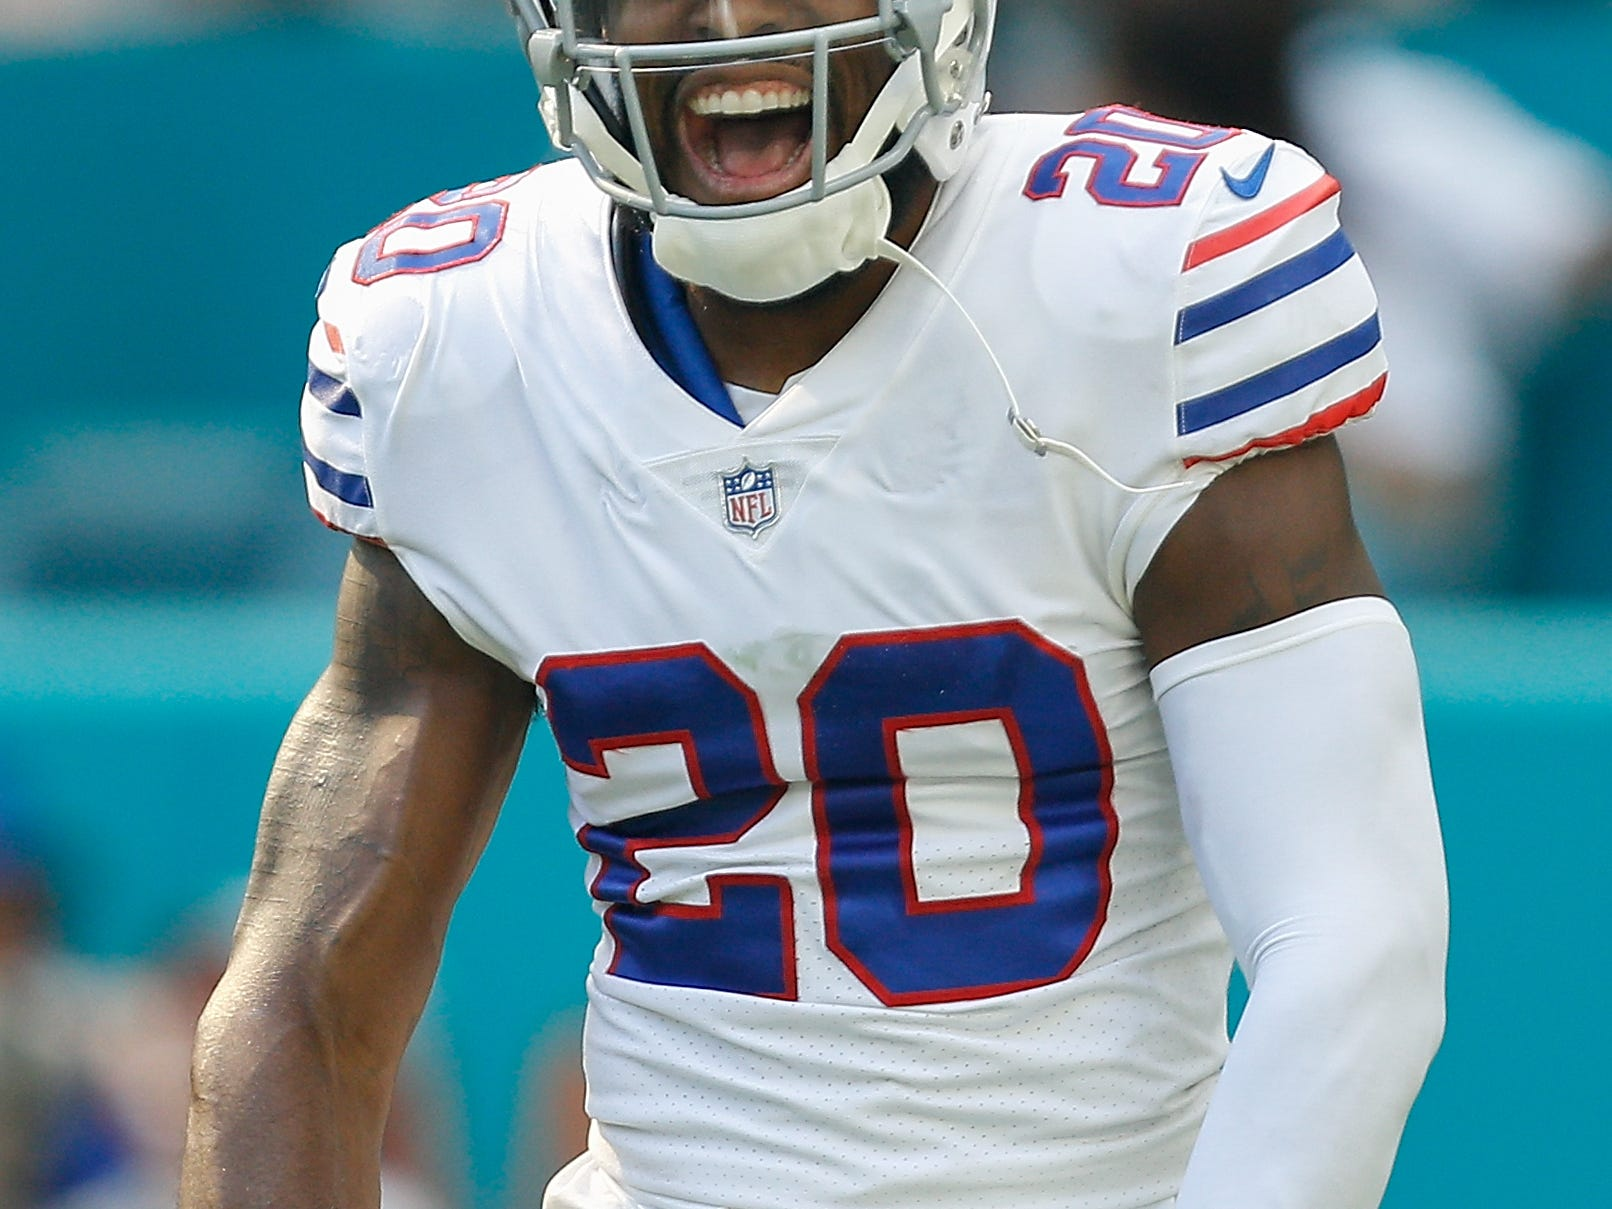 MIAMI, FL - DECEMBER 02: Rafael Bush #20 of the Buffalo Bills reacting after a play during the first half against the Miami Dolphins at Hard Rock Stadium on December 2, 2018 in Miami, Florida.  (Photo by Michael Reaves/Getty Images)